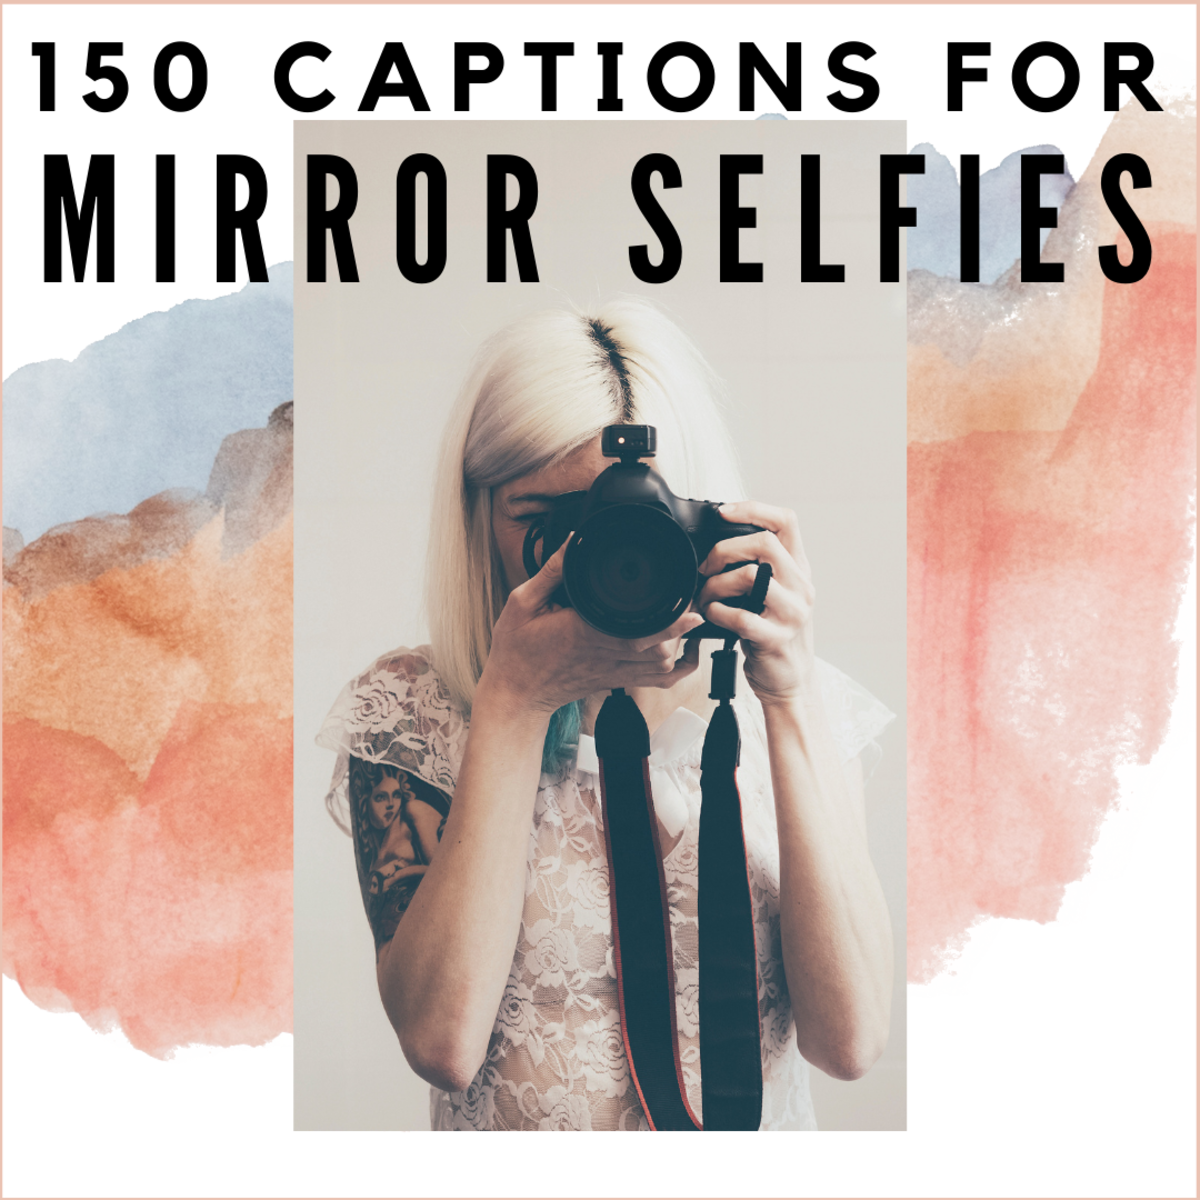 Find just the right caption for your mirror selfie.